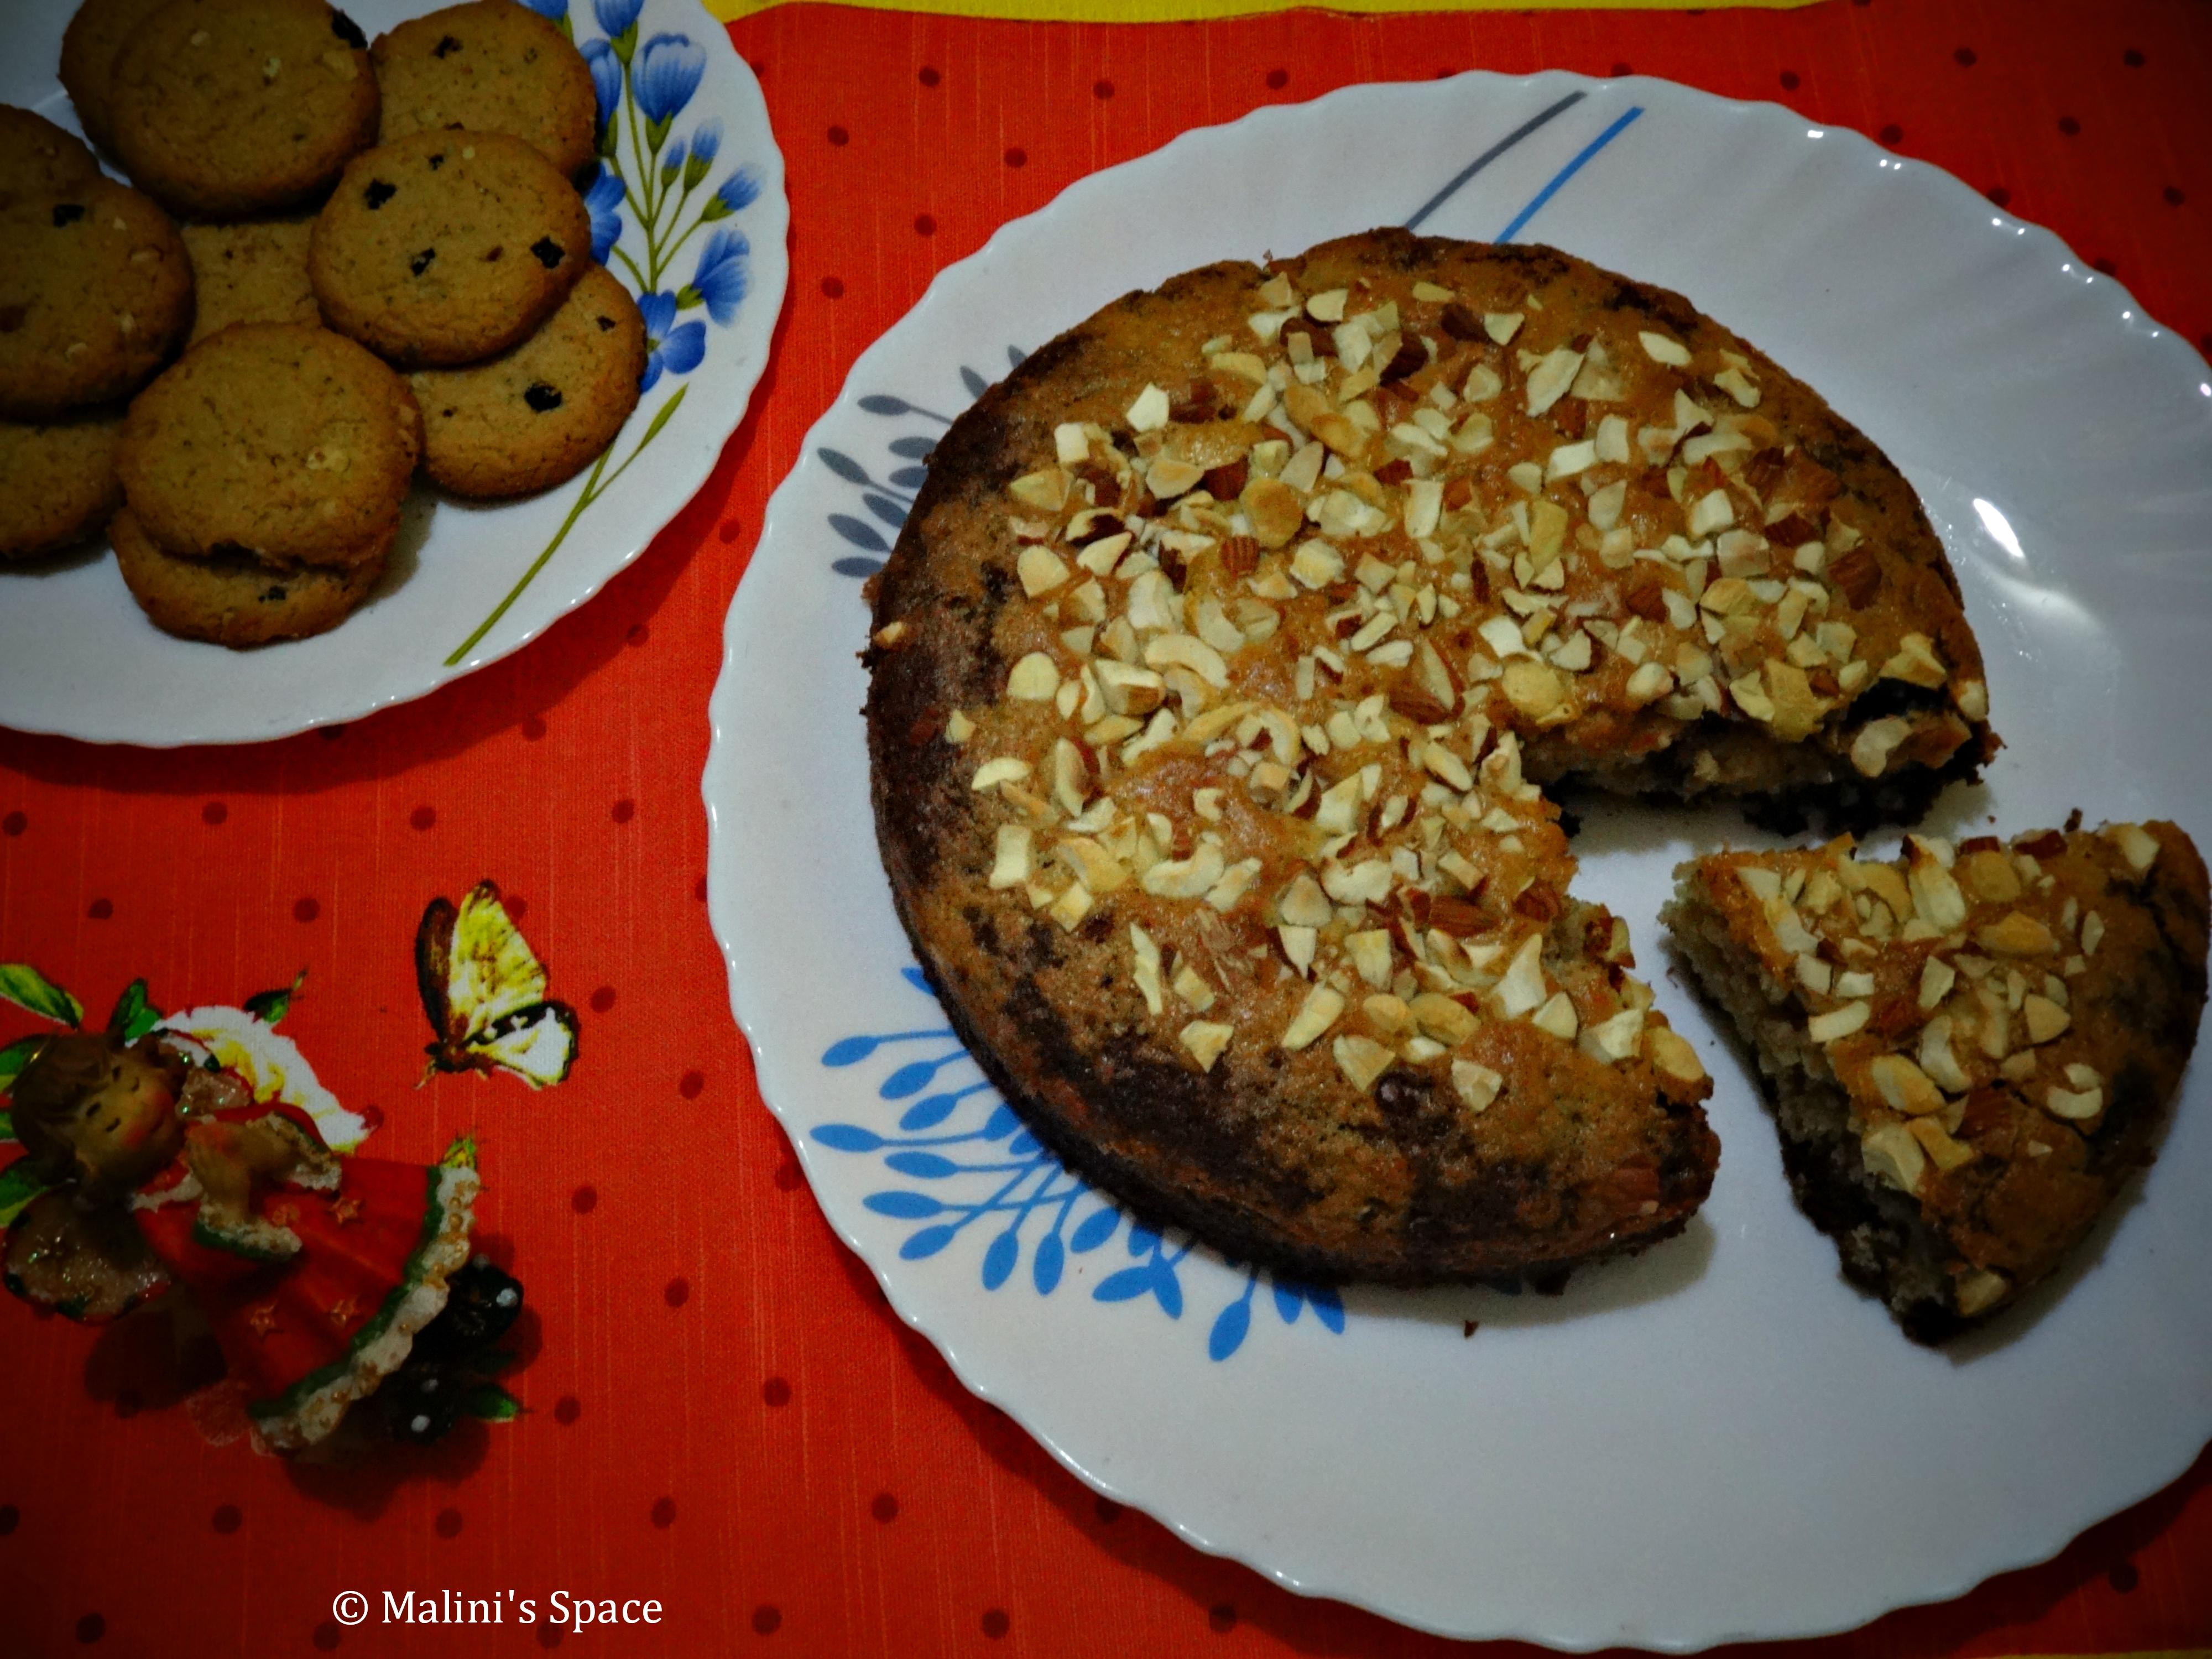 Egg-less Cocoa Bread Cake topped with Nuts